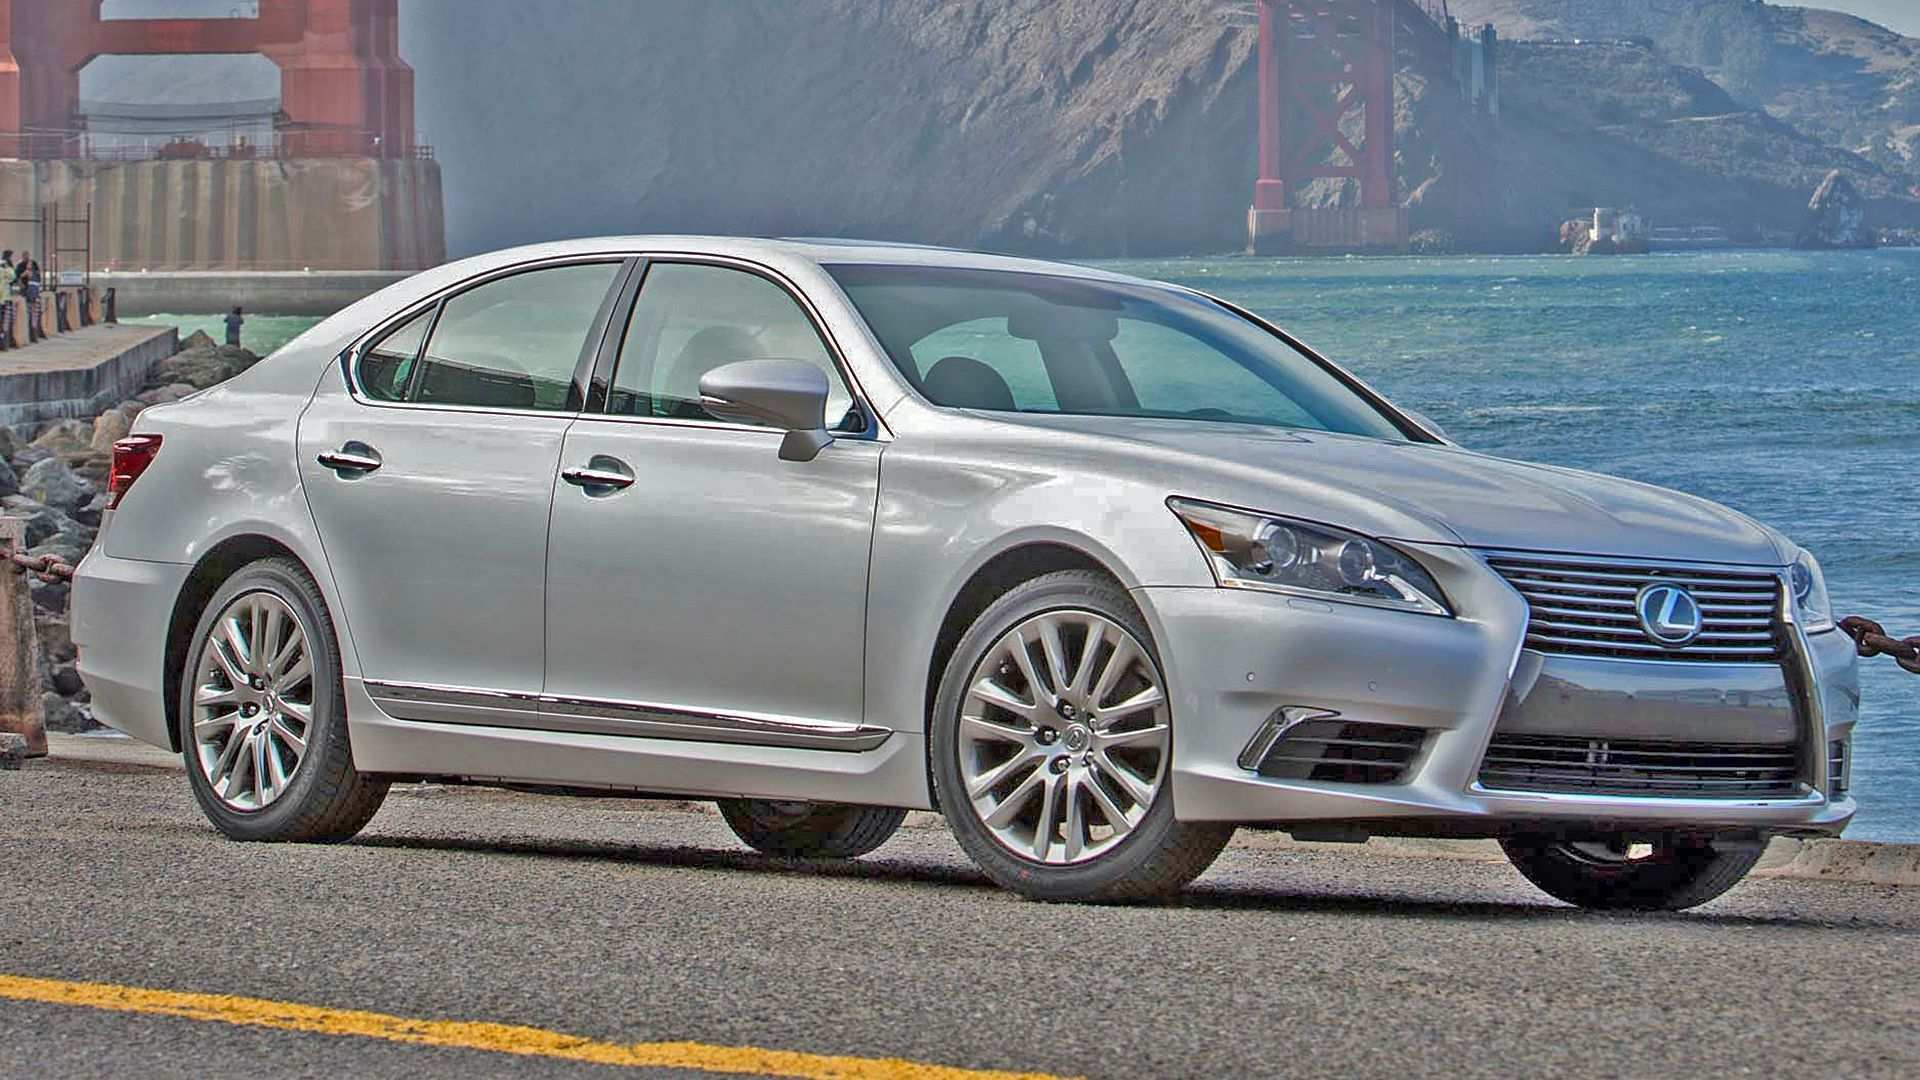 56 Concept of 2019 Lexus Ls Price Images for 2019 Lexus Ls Price